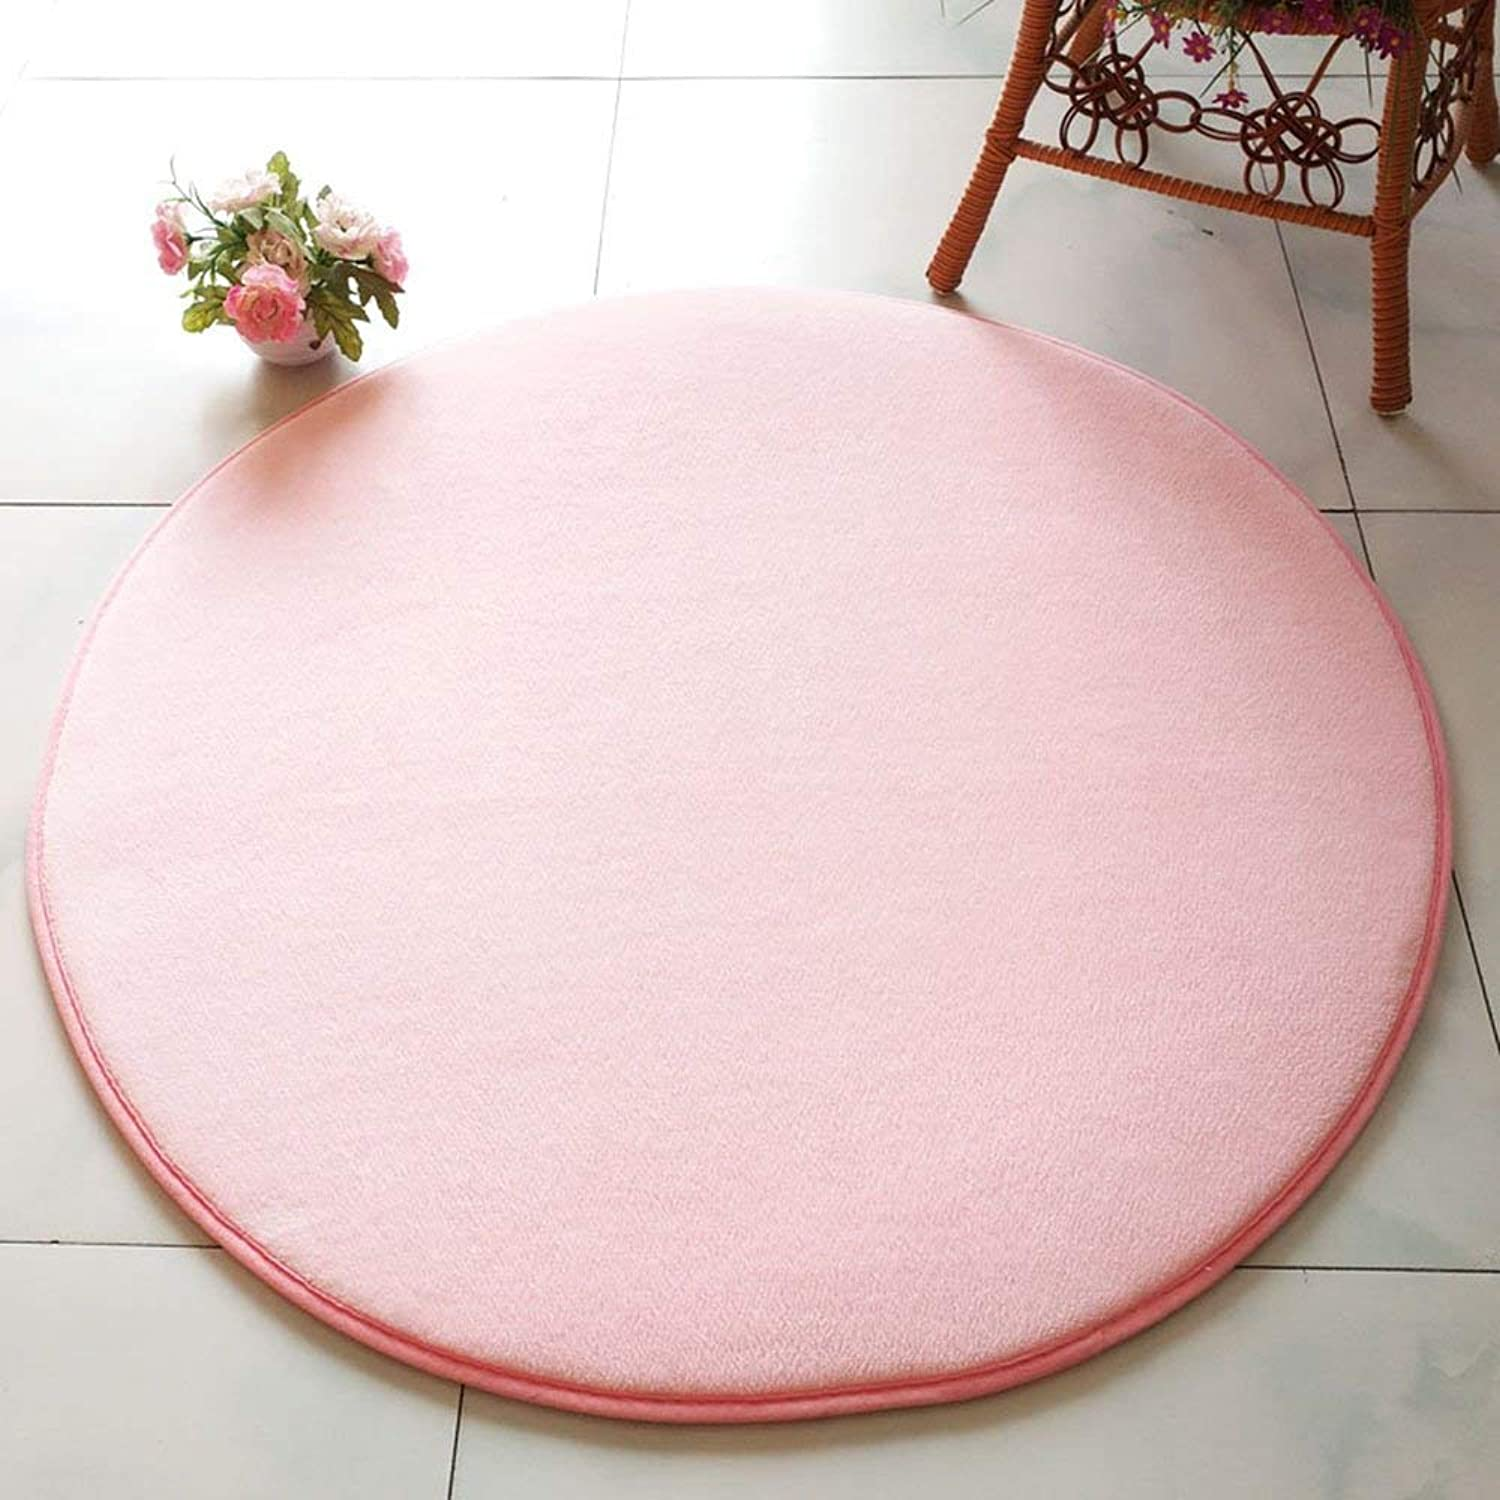 Royare Home Decorations mat Round Solid color Non-Slip Hanging Chair Pad Bedroom Tea Table Pad (color   Pink, Size   100cm)